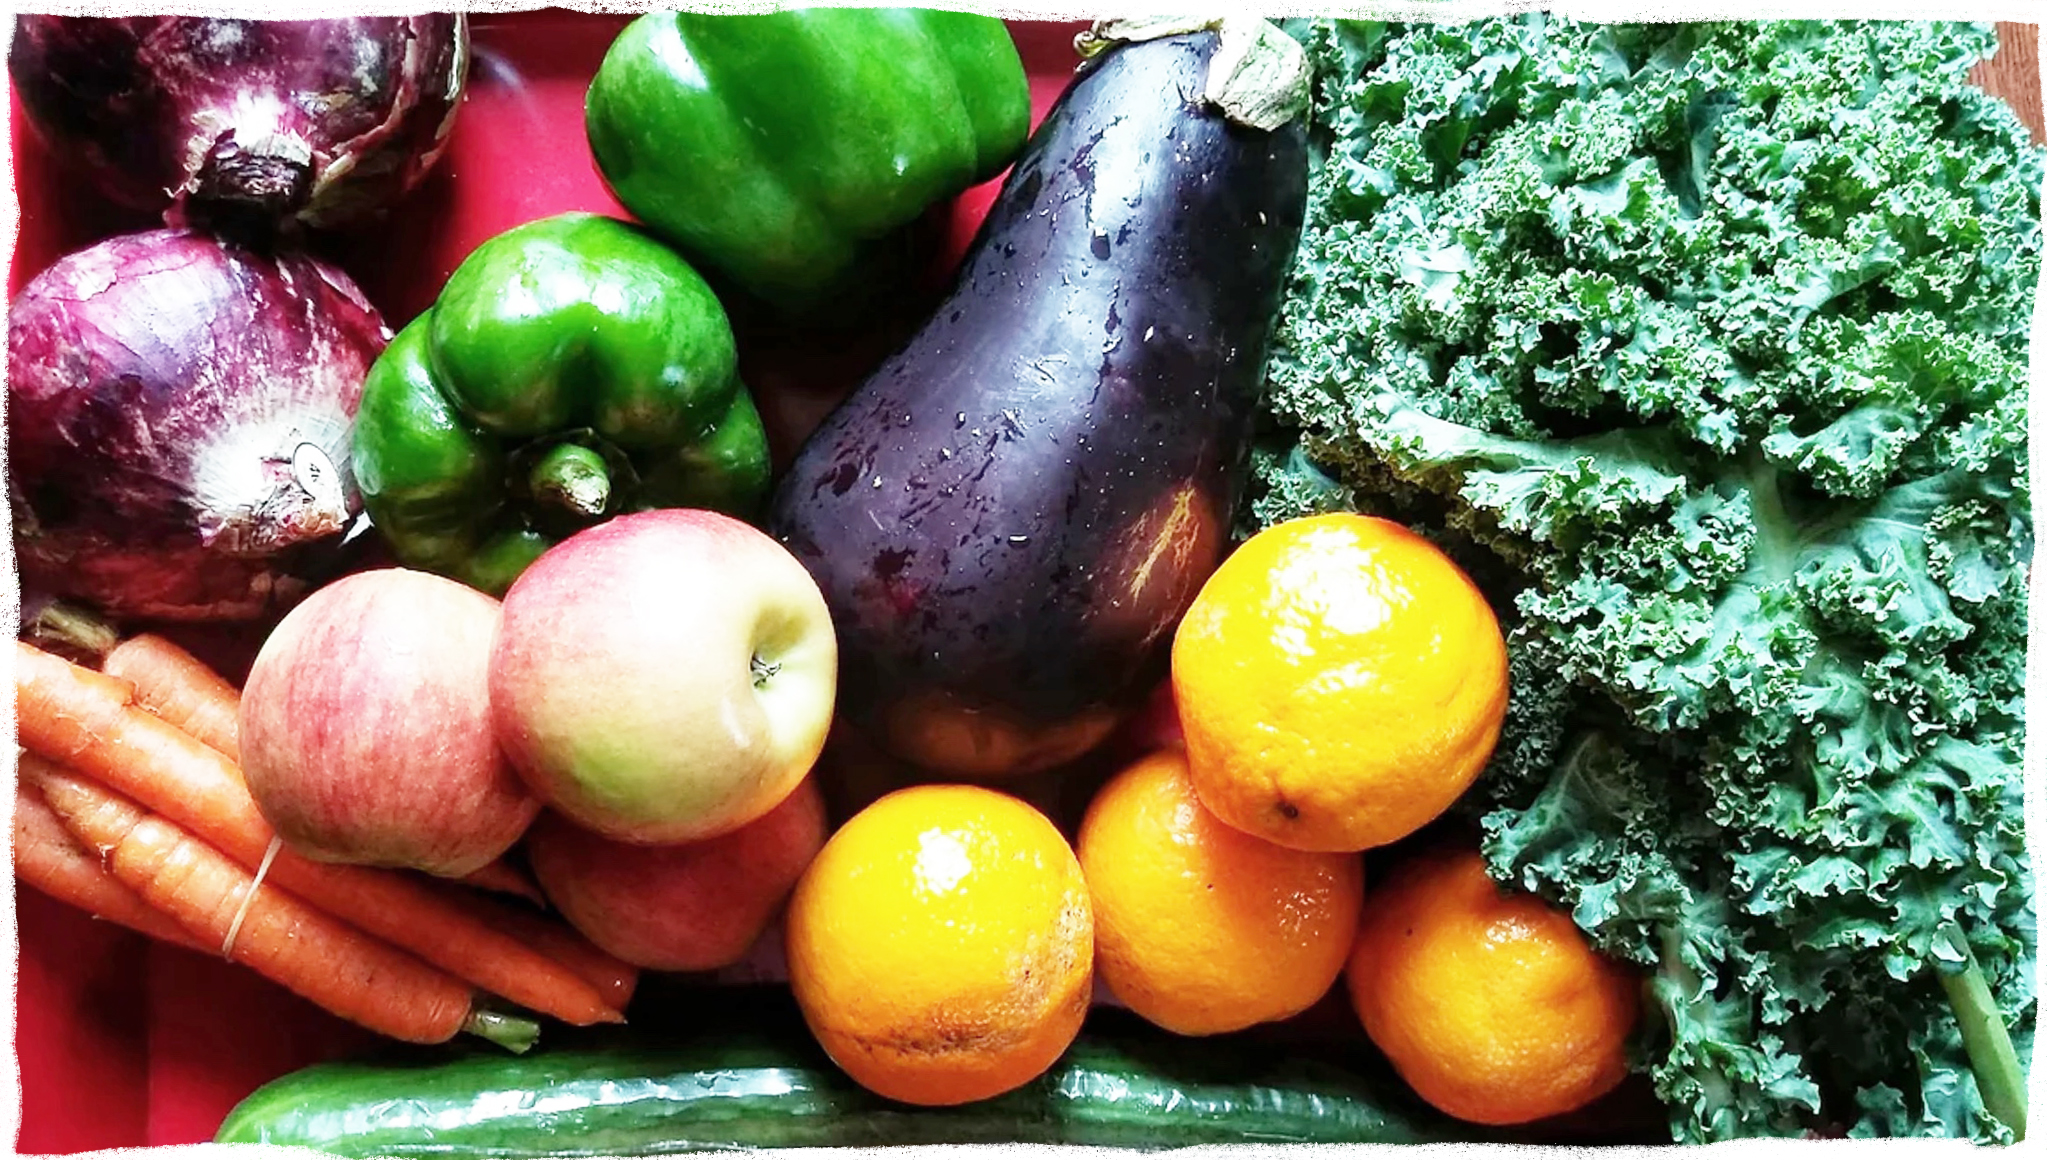 Learning patience & appreciation with fruits & veggies - - Danni McGhee, DAM Good Vegan